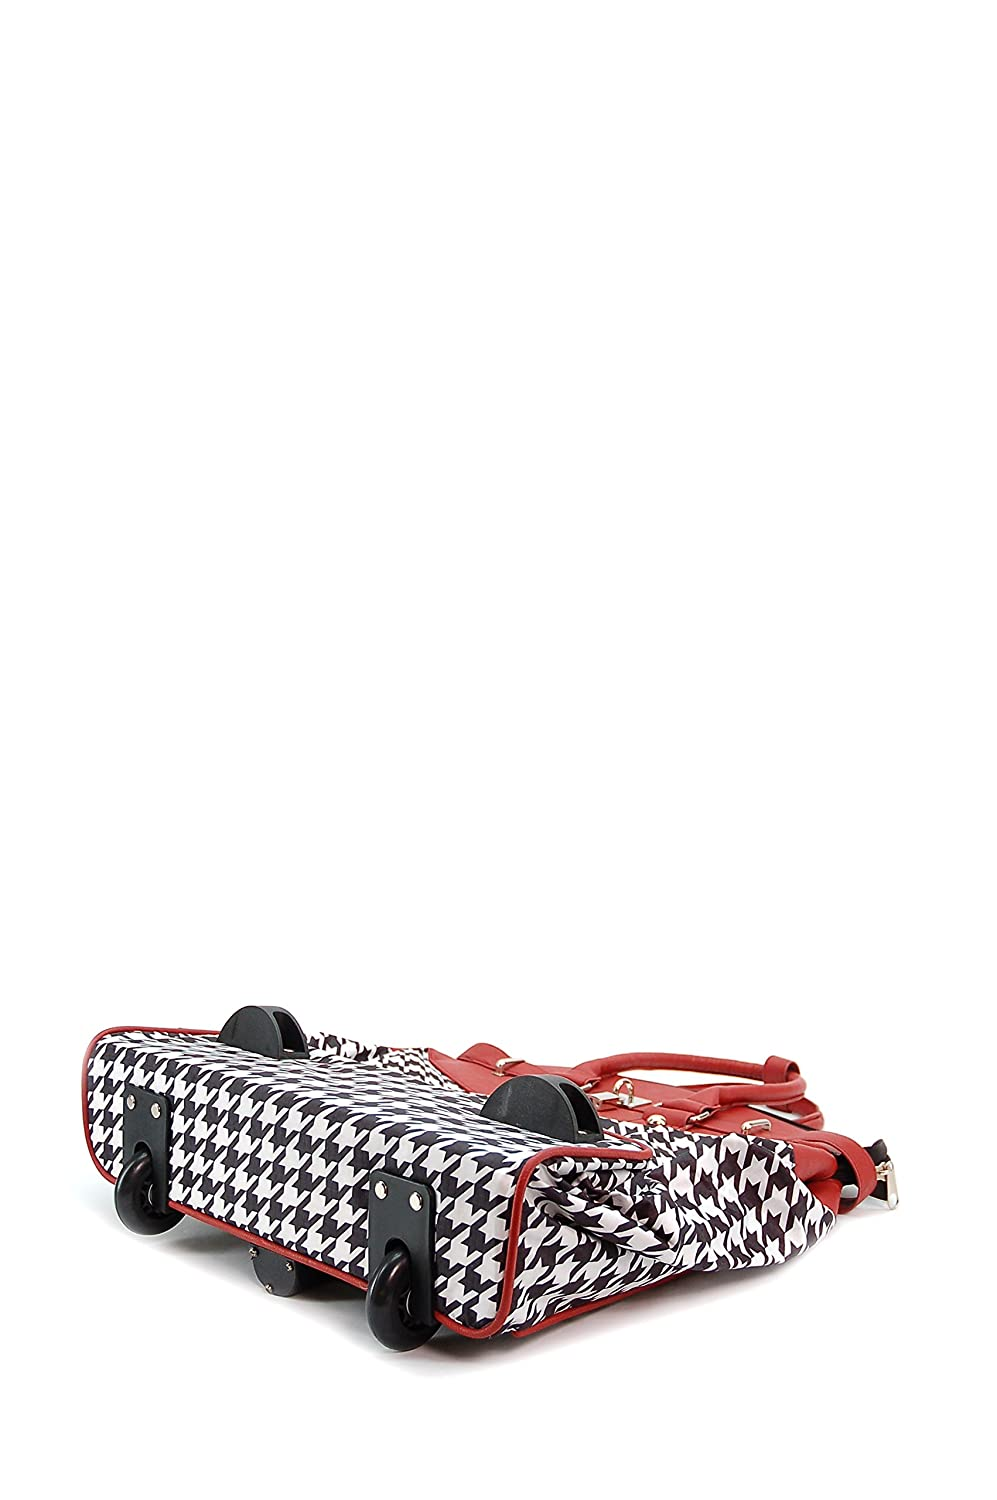 16X 9X16 Foldable ALFA Bags Mad Red HOUNDSTOOTH Rollie Tote